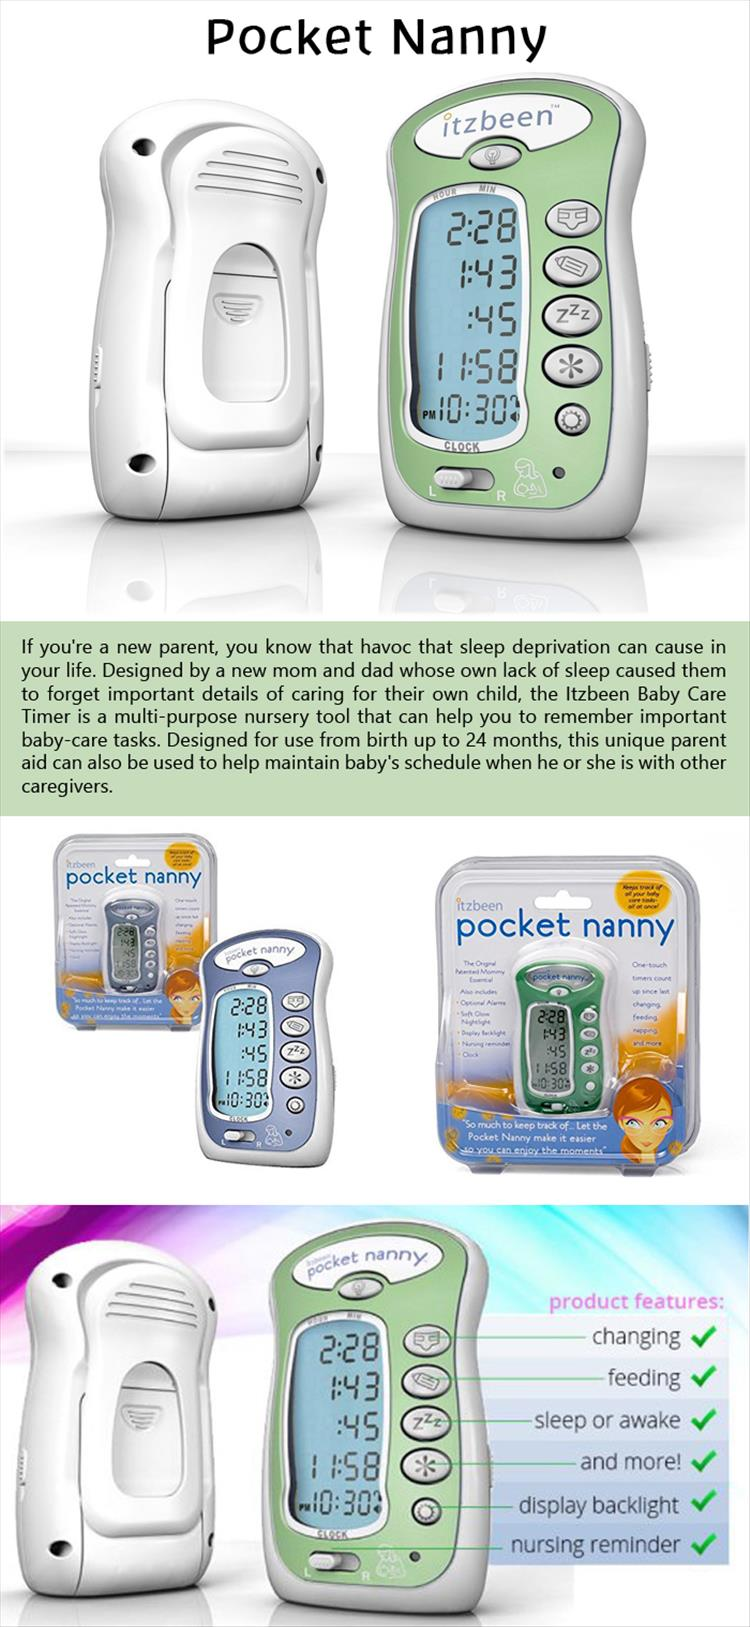 Pocket Nanny